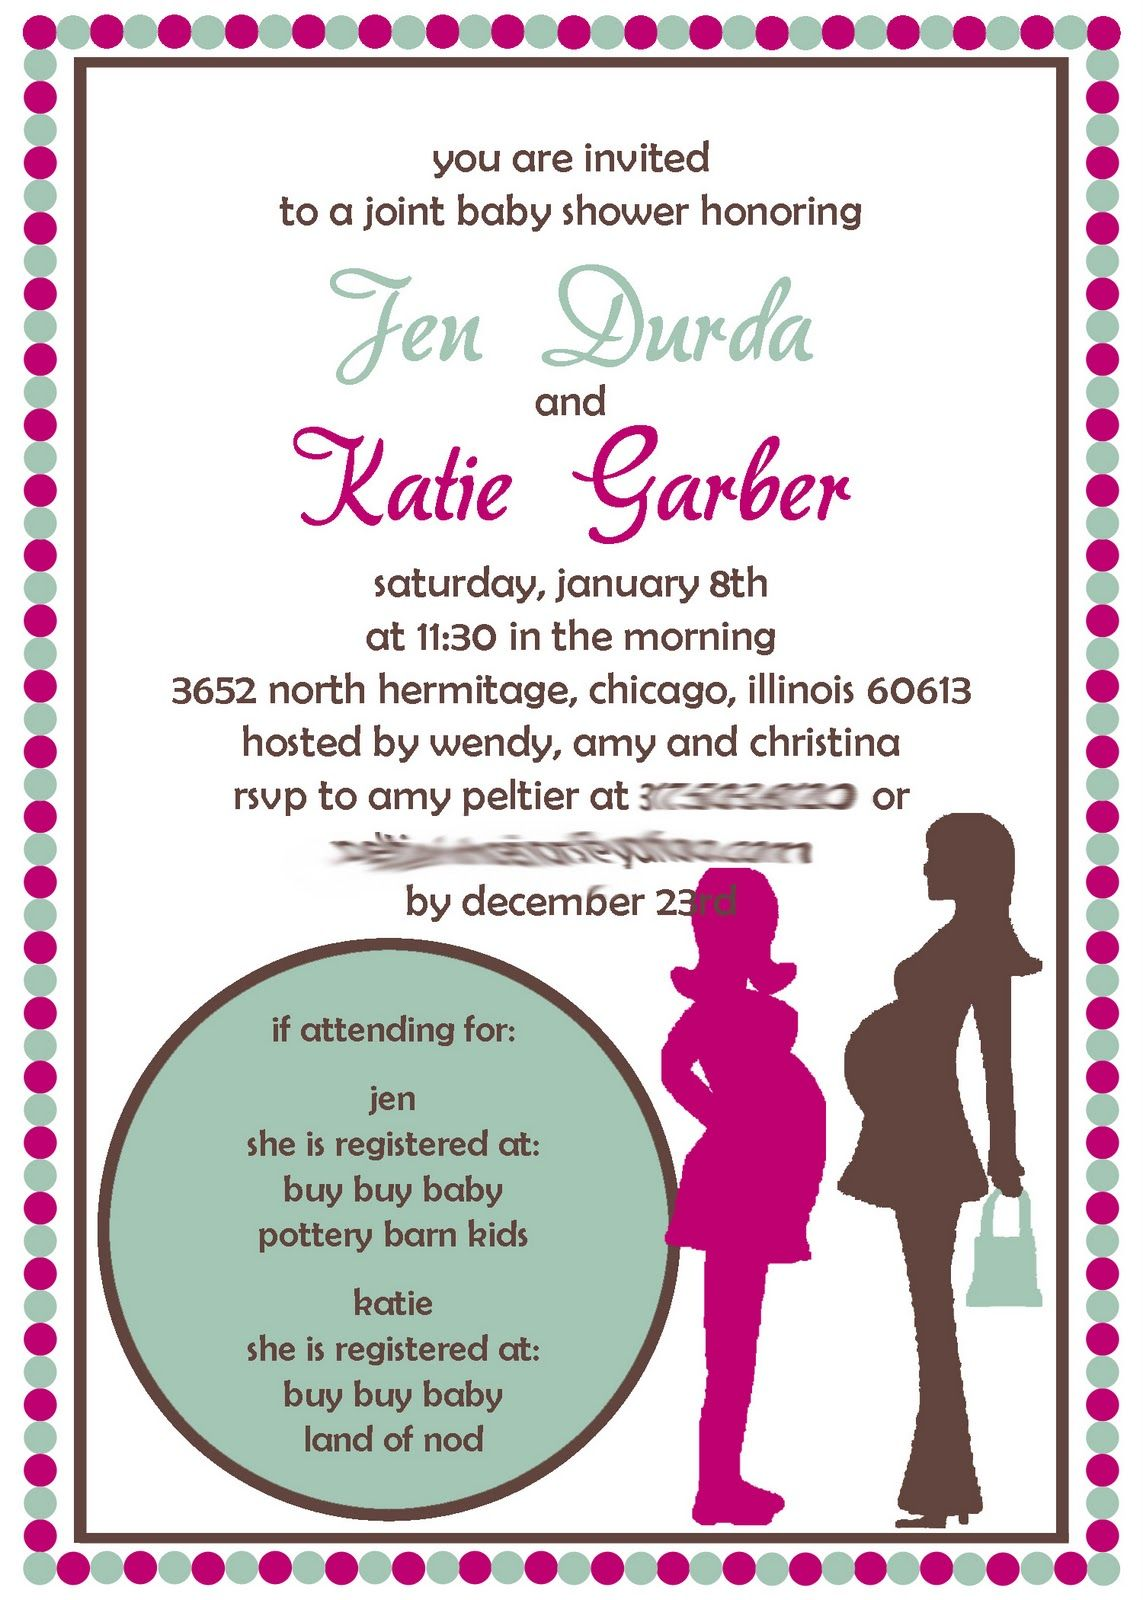 Joint baby shower invitation google image result for http3bp joint baby shower invitation google image result for http3bp filmwisefo Images